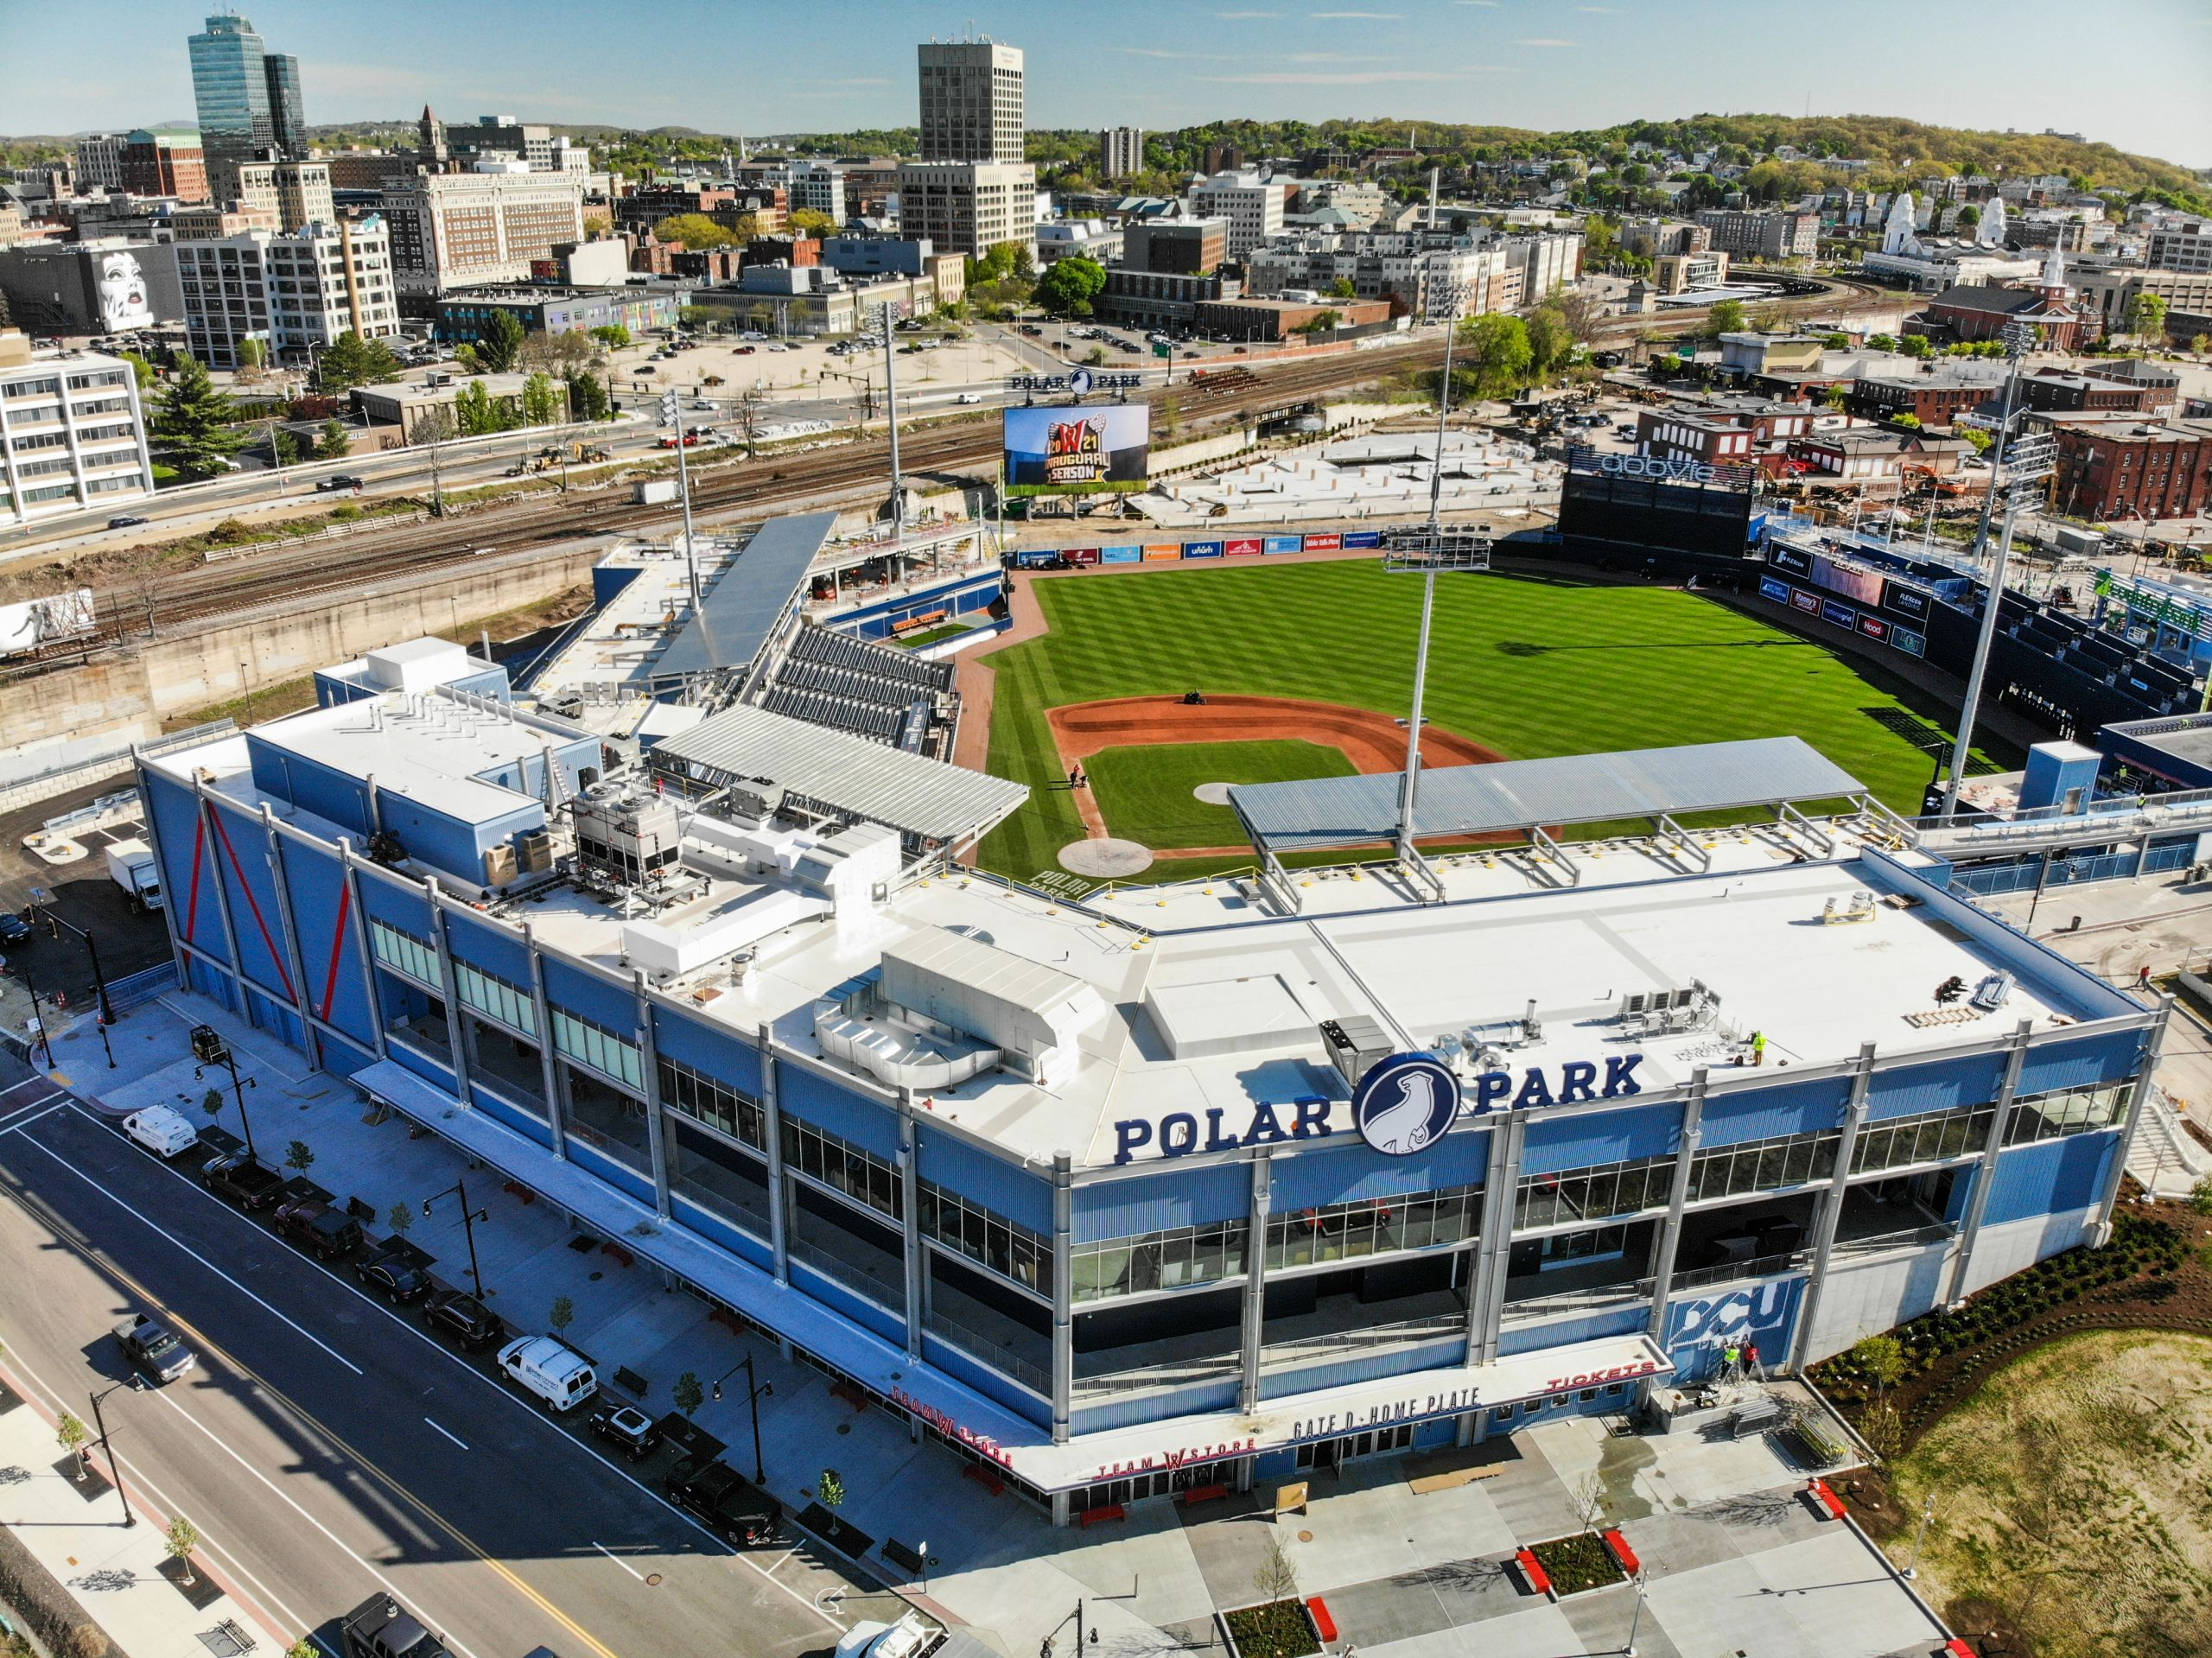 Drone photo of the new Polar Park stadium in Worcester, MA